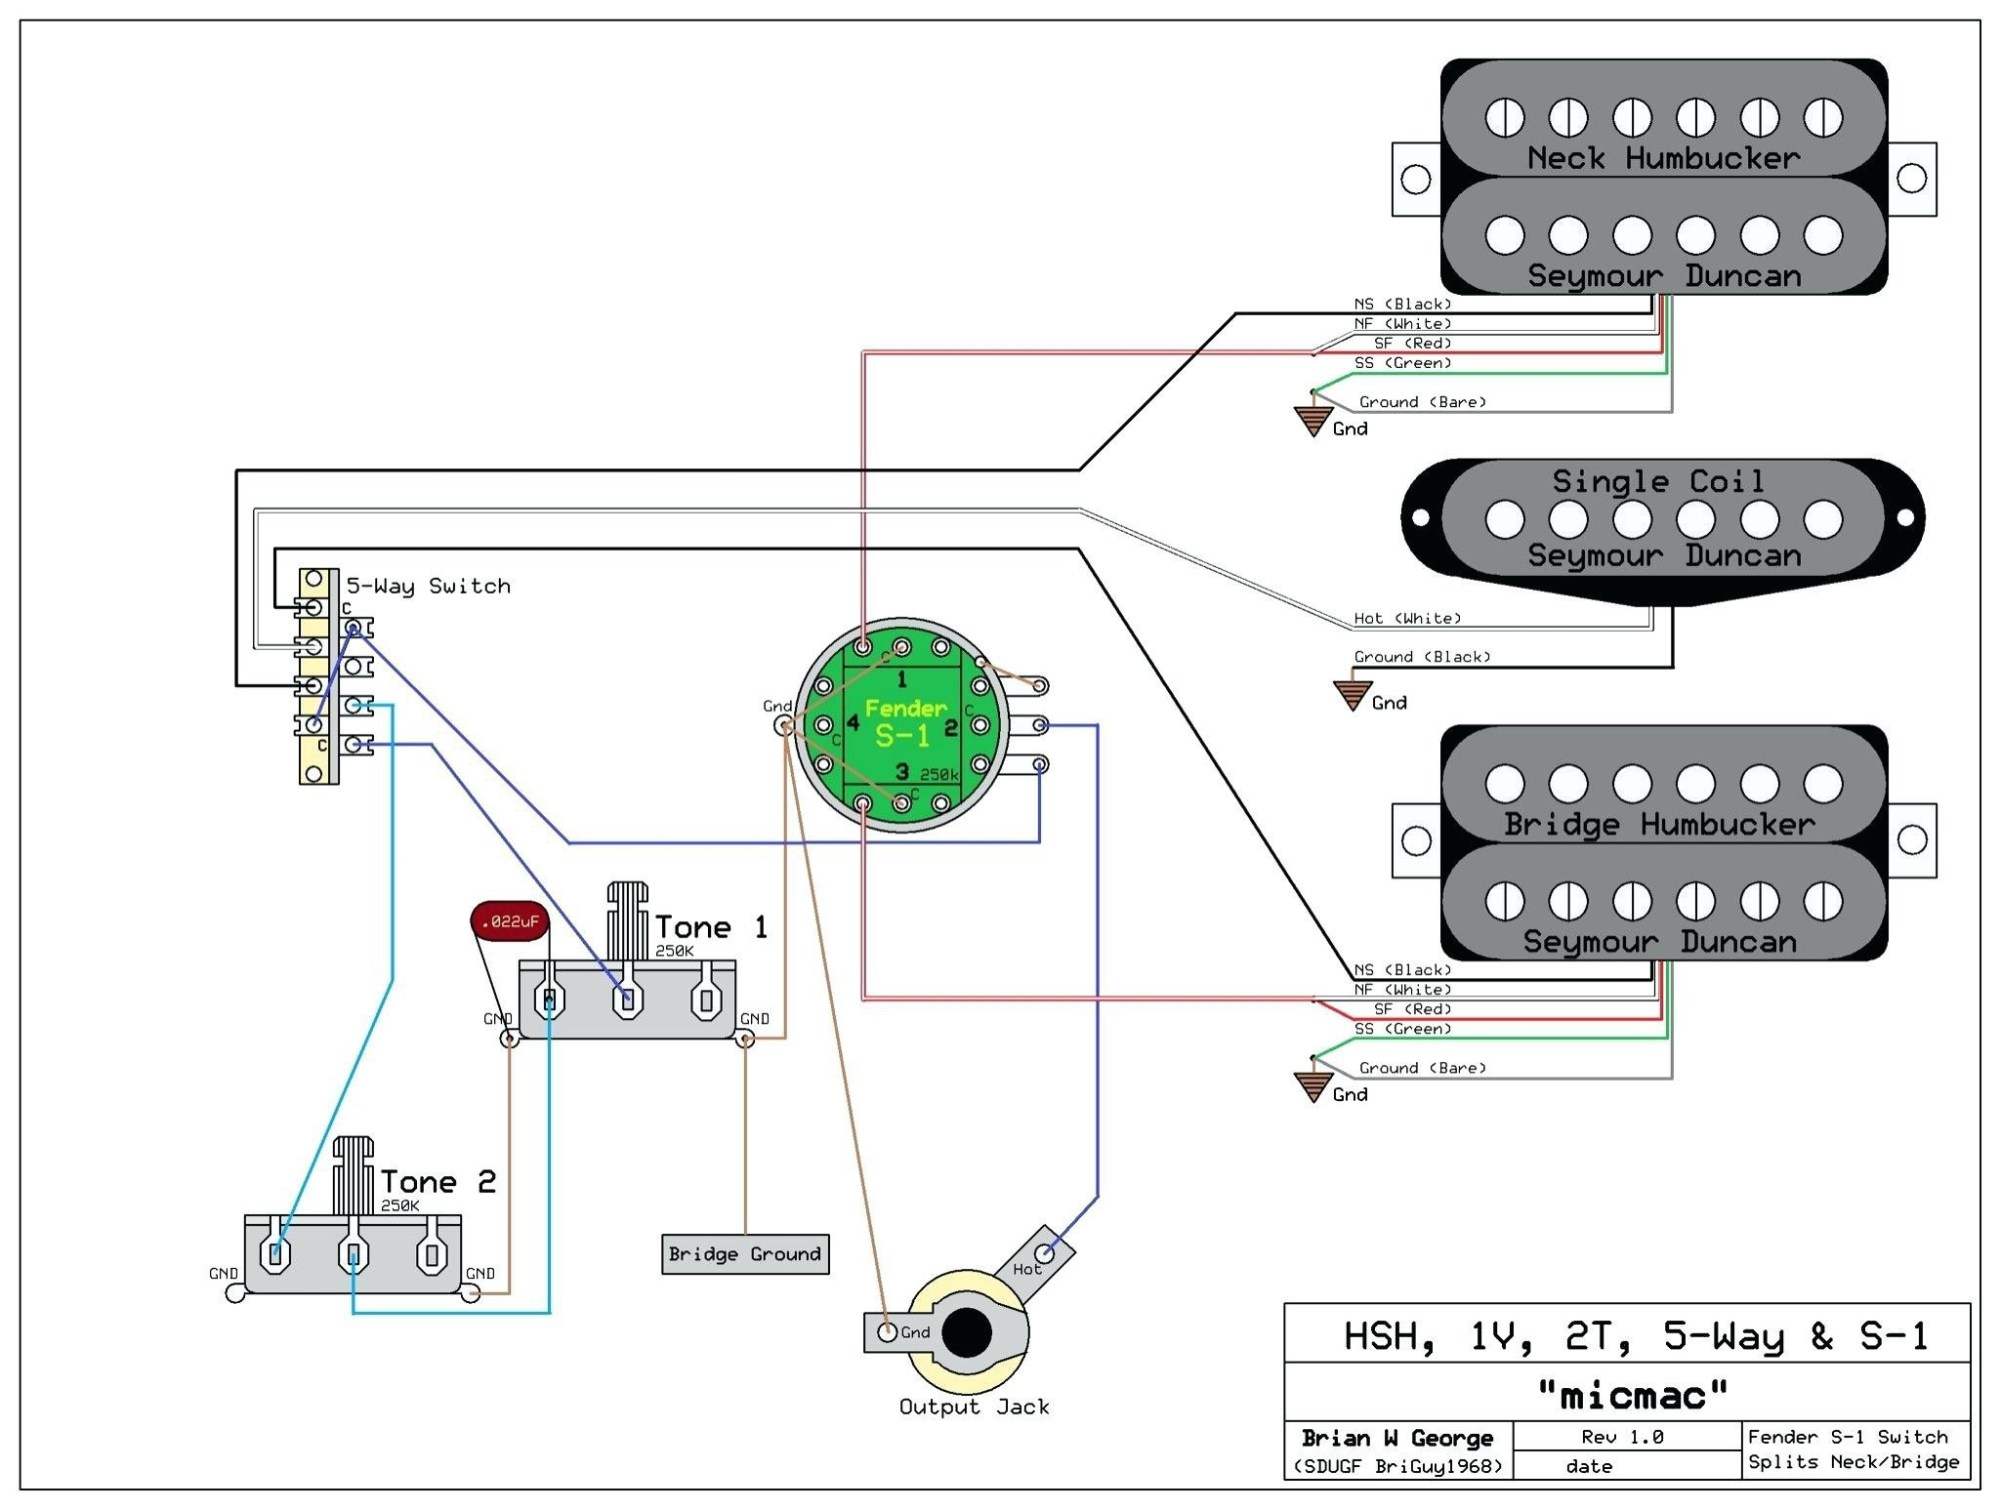 hight resolution of 1994 fender stratocaster wiring diagram wiring library1977 fender stratocaster wiring diagram anything diagrams